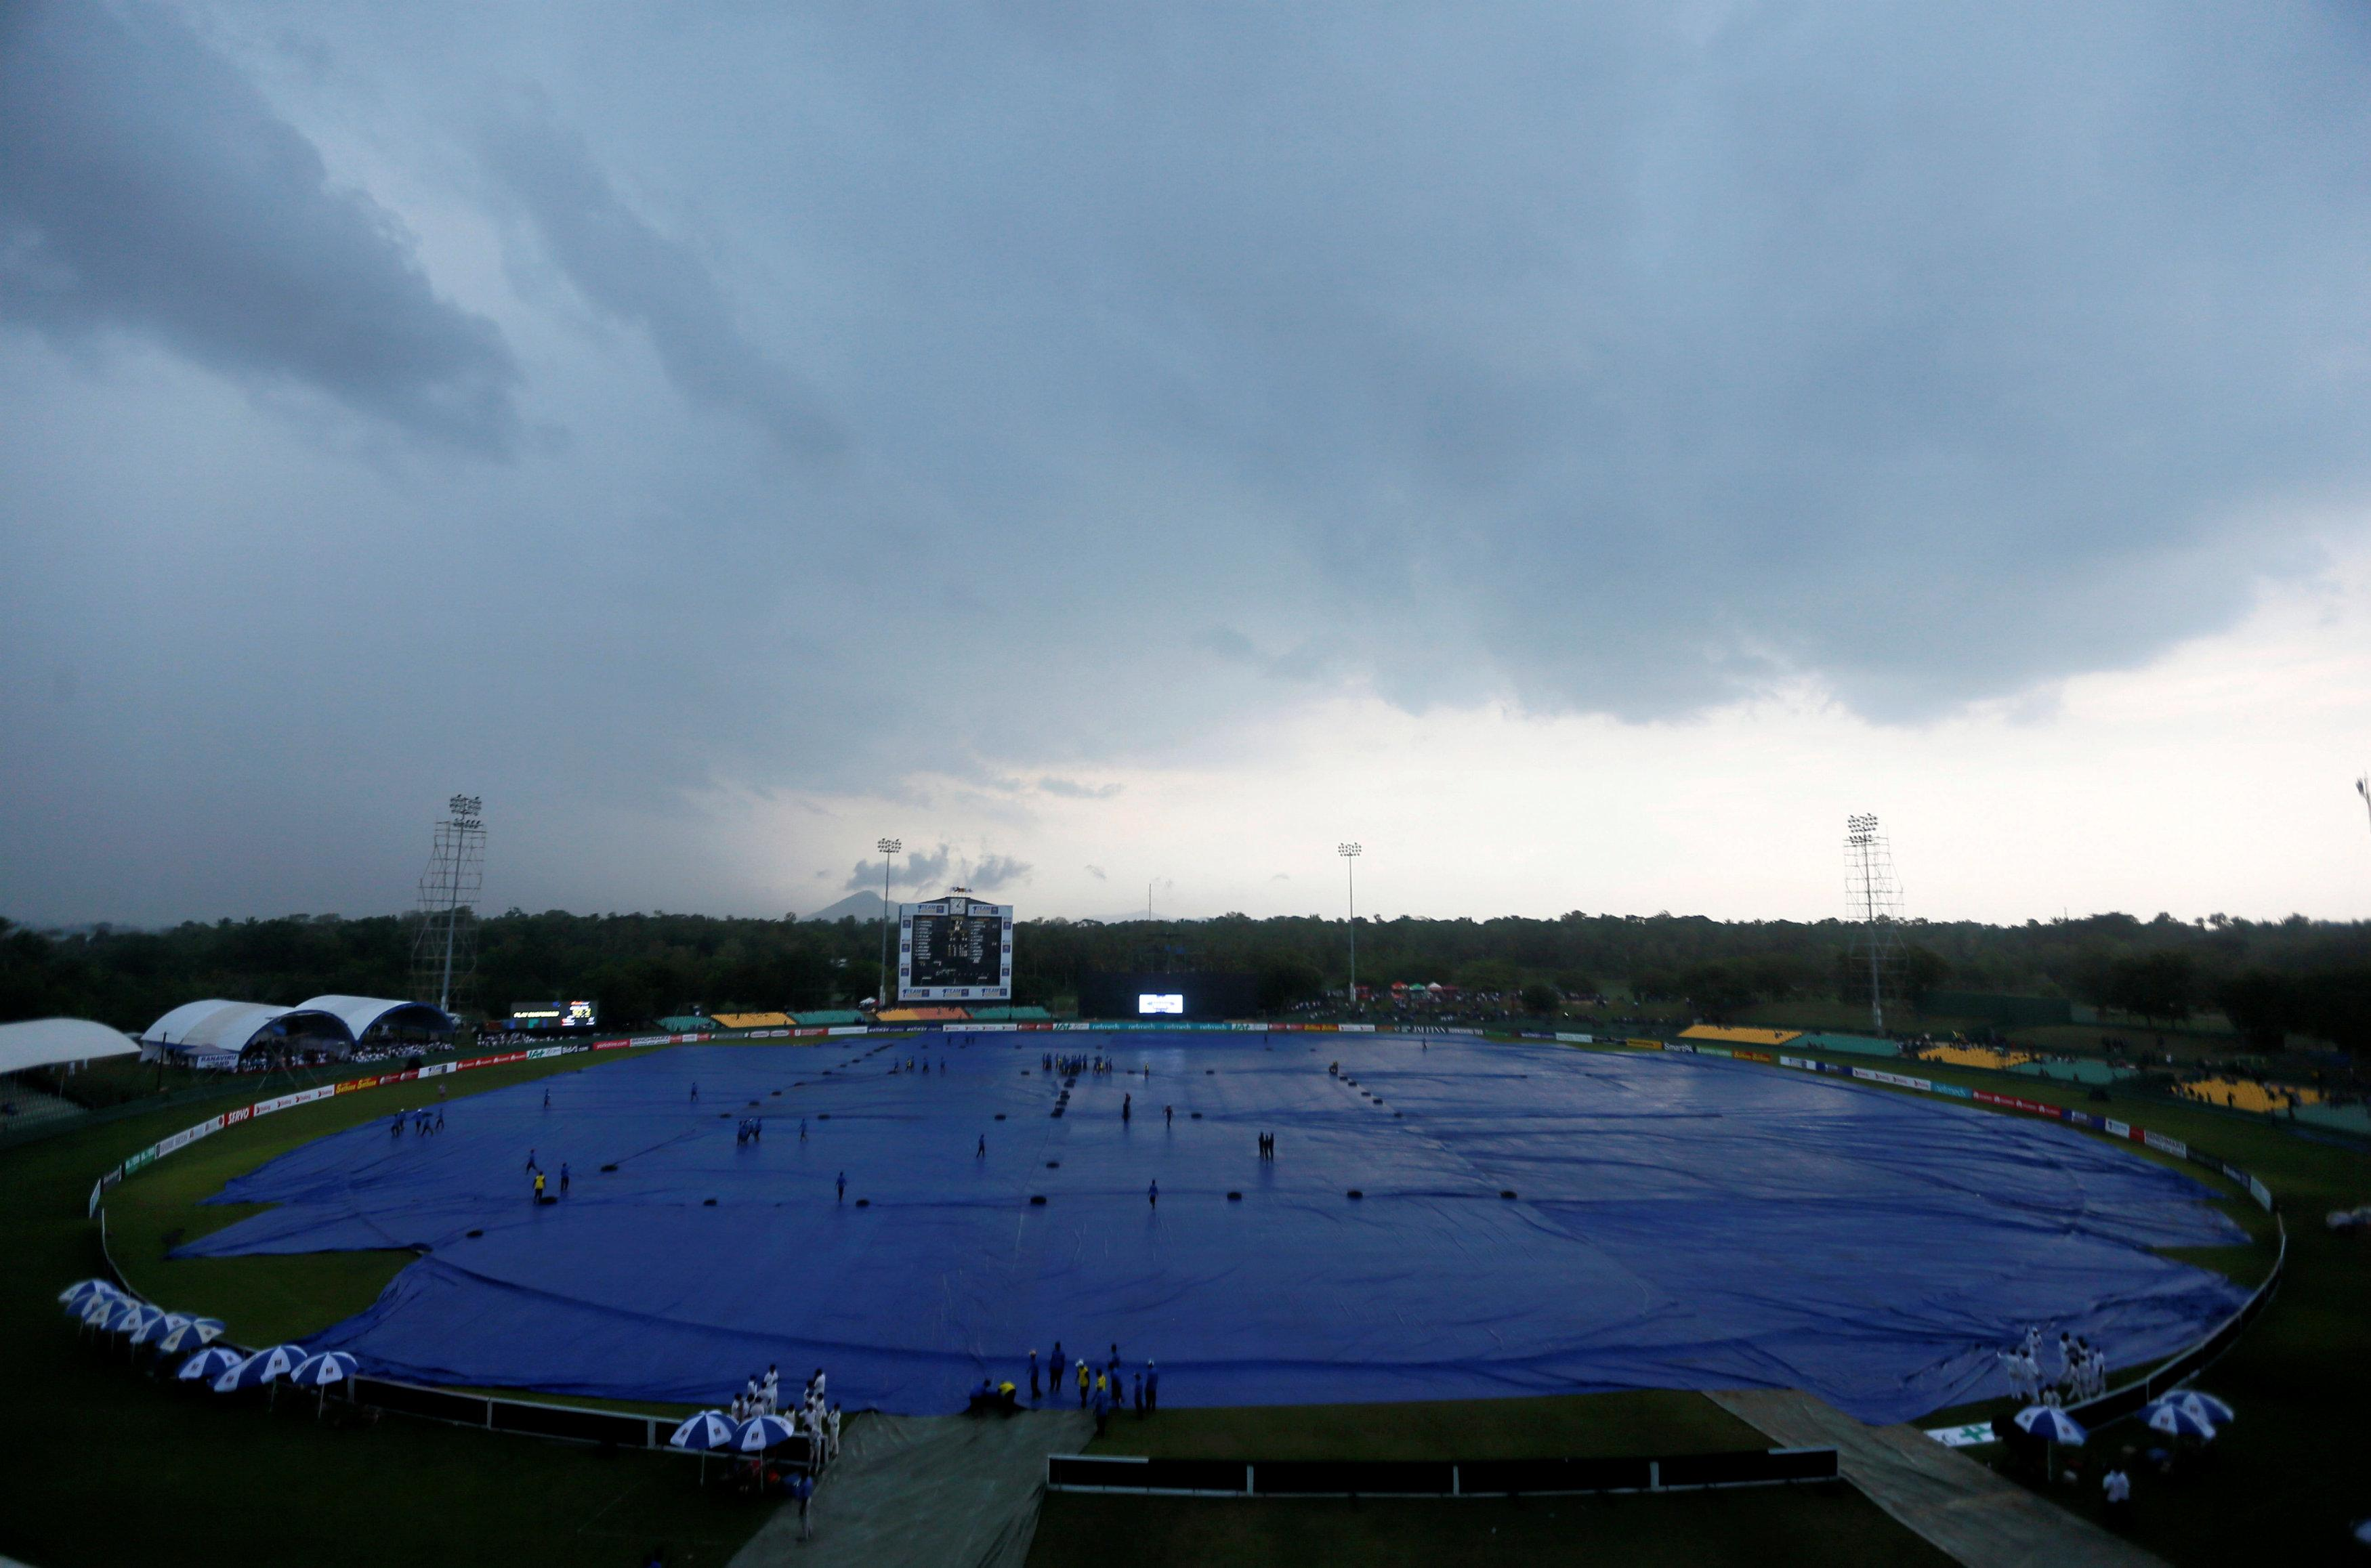 Poor weather meant the first ODI was abandoned after just 15 overs